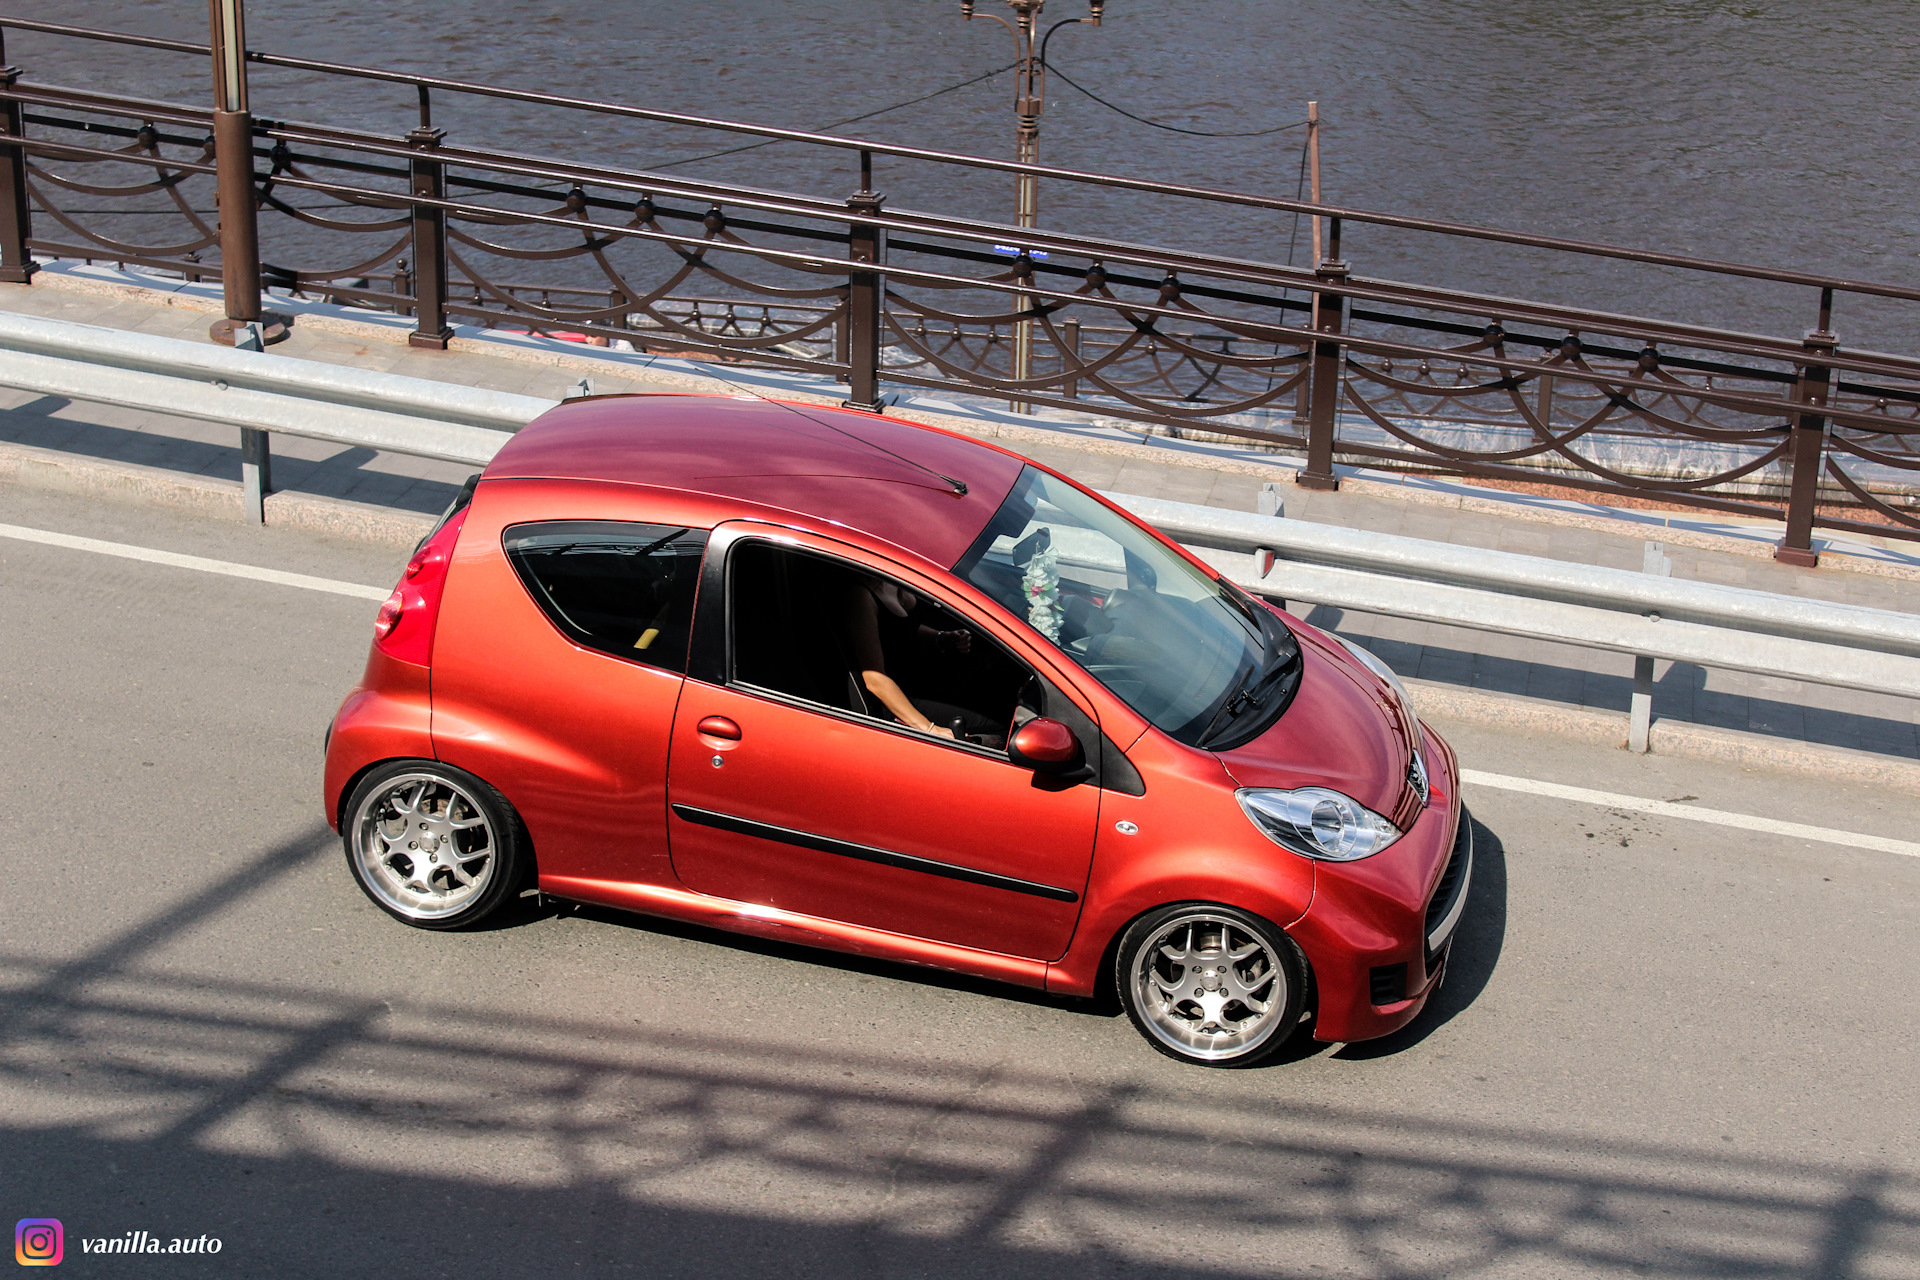 Peugeot 107 roof box how much does it cost to install a water heater from home depot?